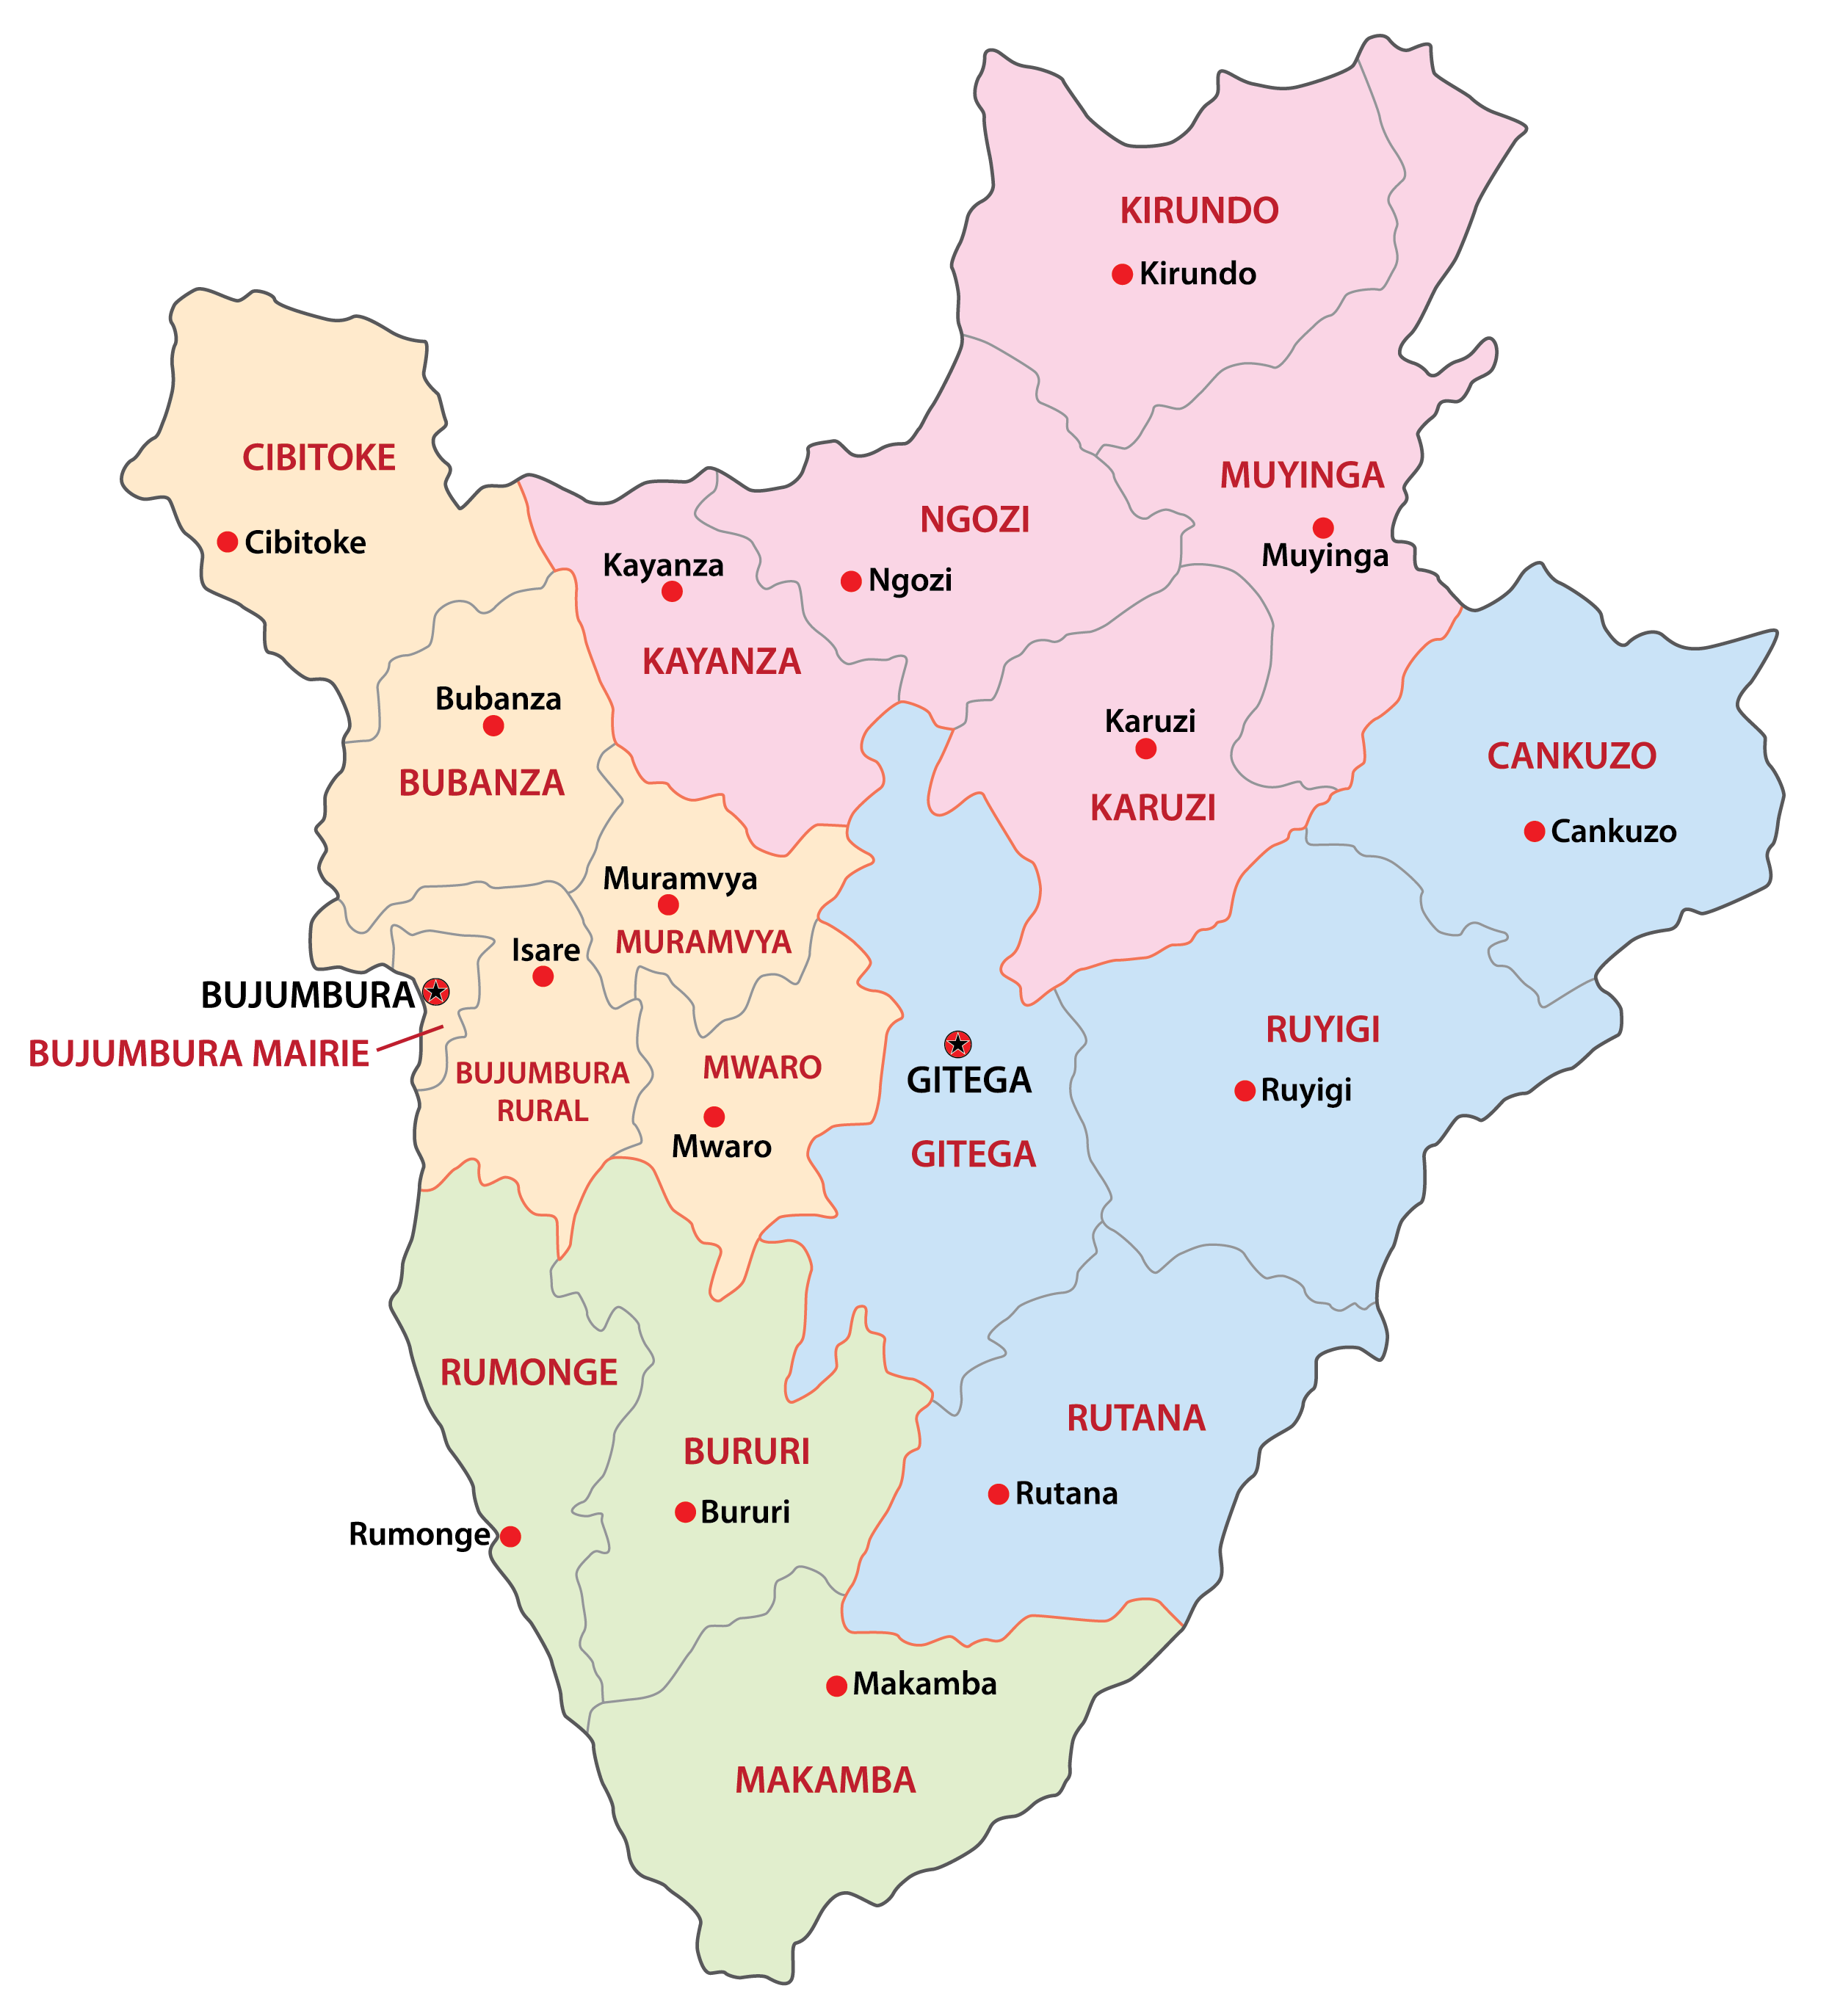 Political map of Burundi displaying its 18 provinces, their capital cities, and the national capital of Gitega.